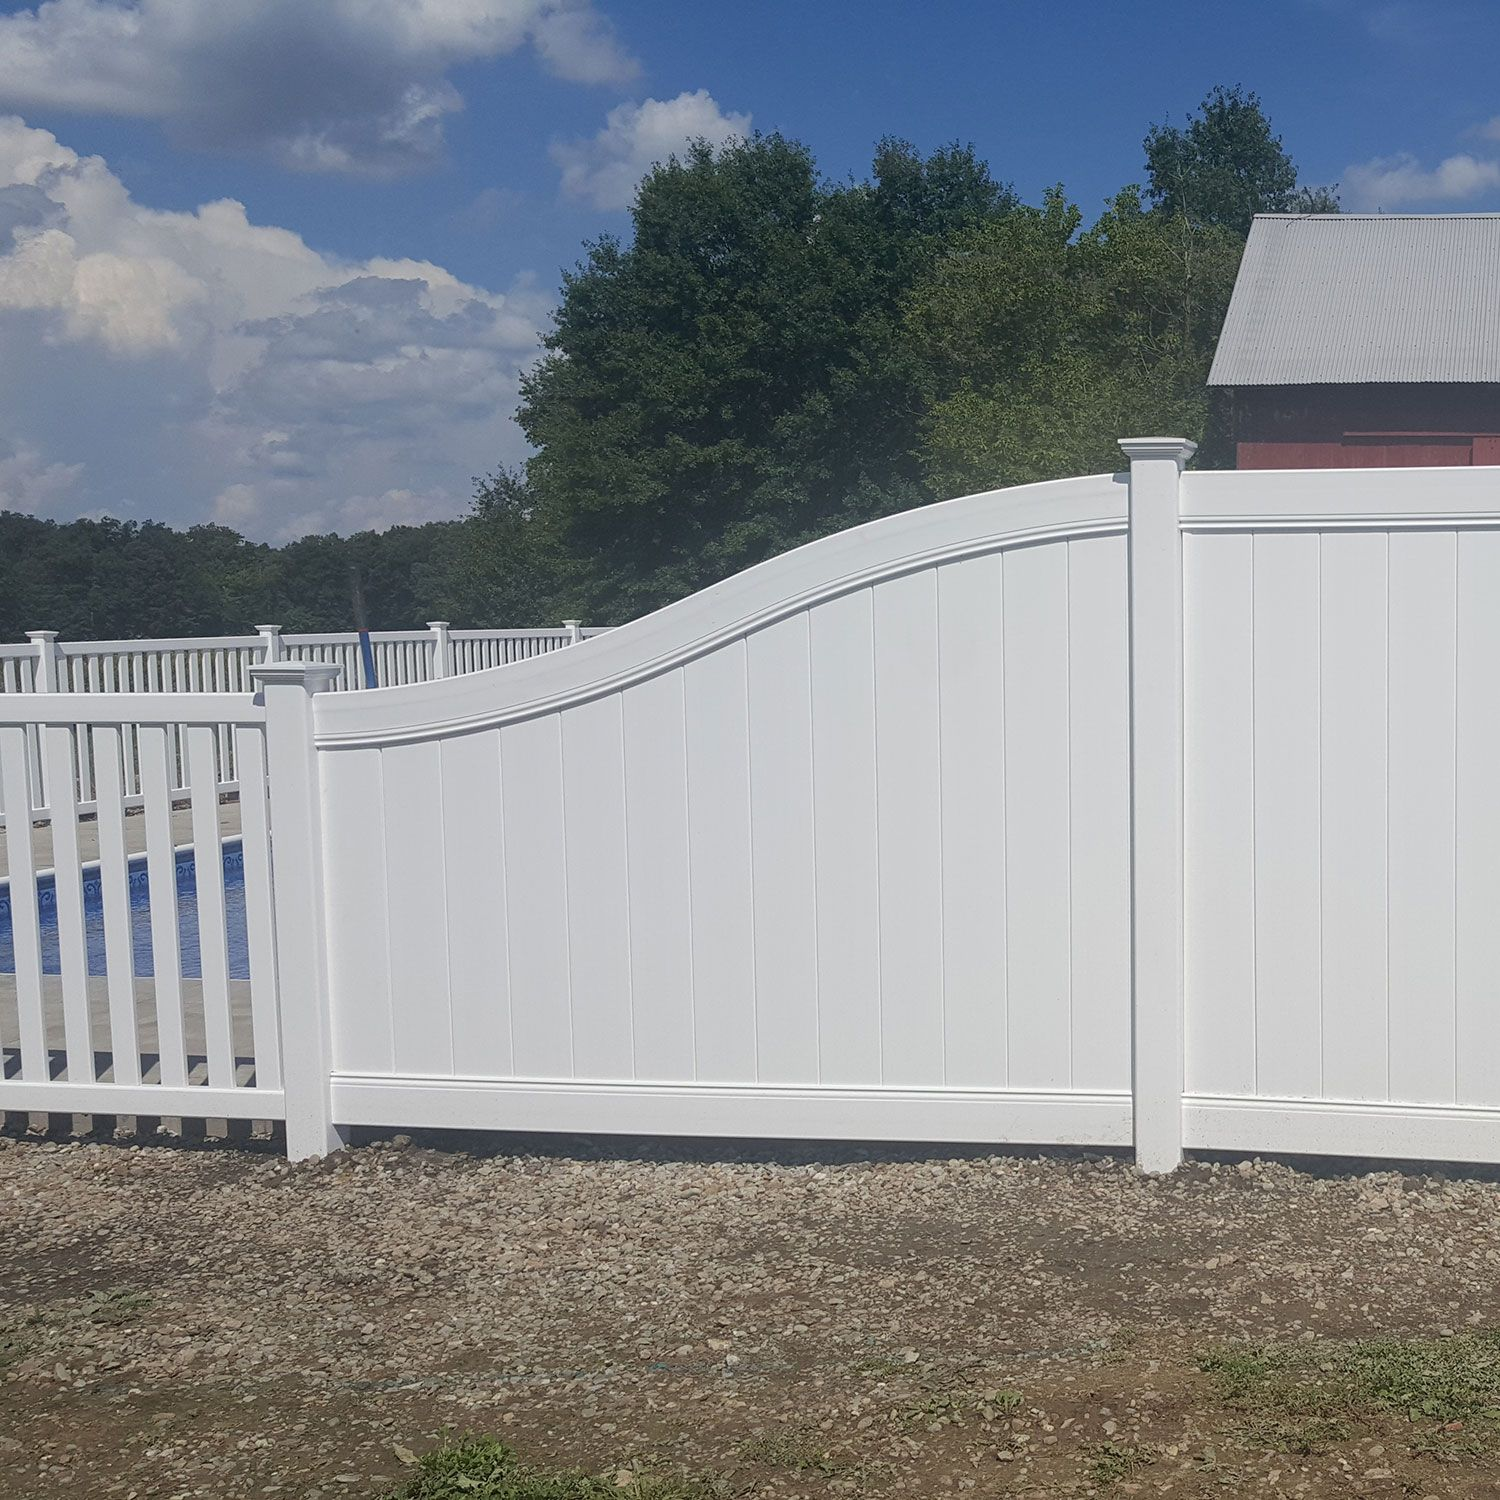 Bufftech Chesterfield Vinyl Fence Sections - S-Curve Top Rail